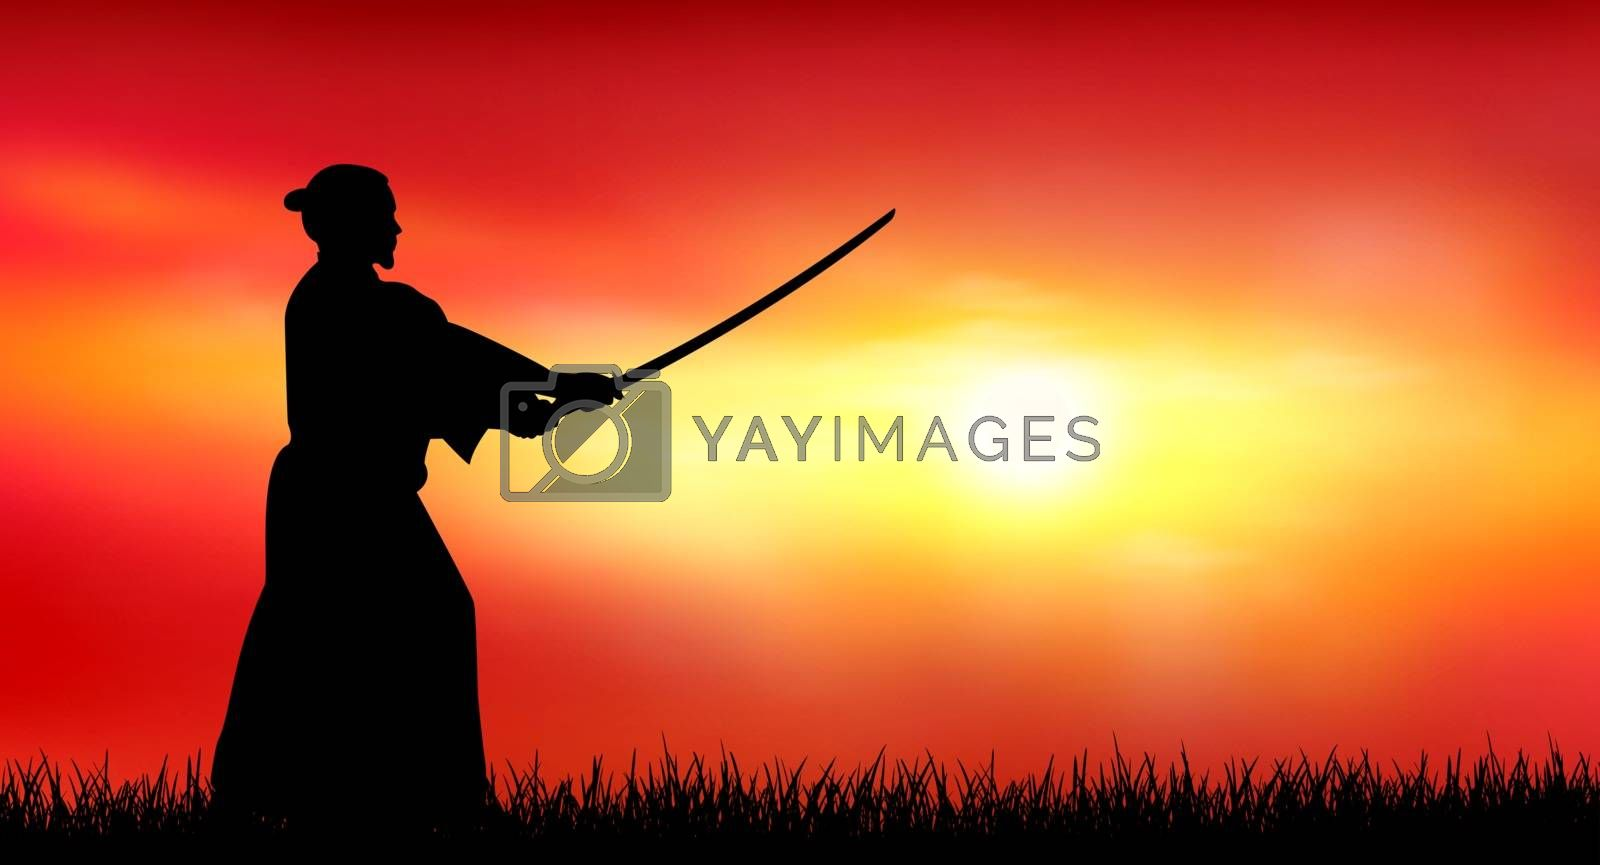 A man stands with a sword in his hands against the backdrop of a sunny sunset.